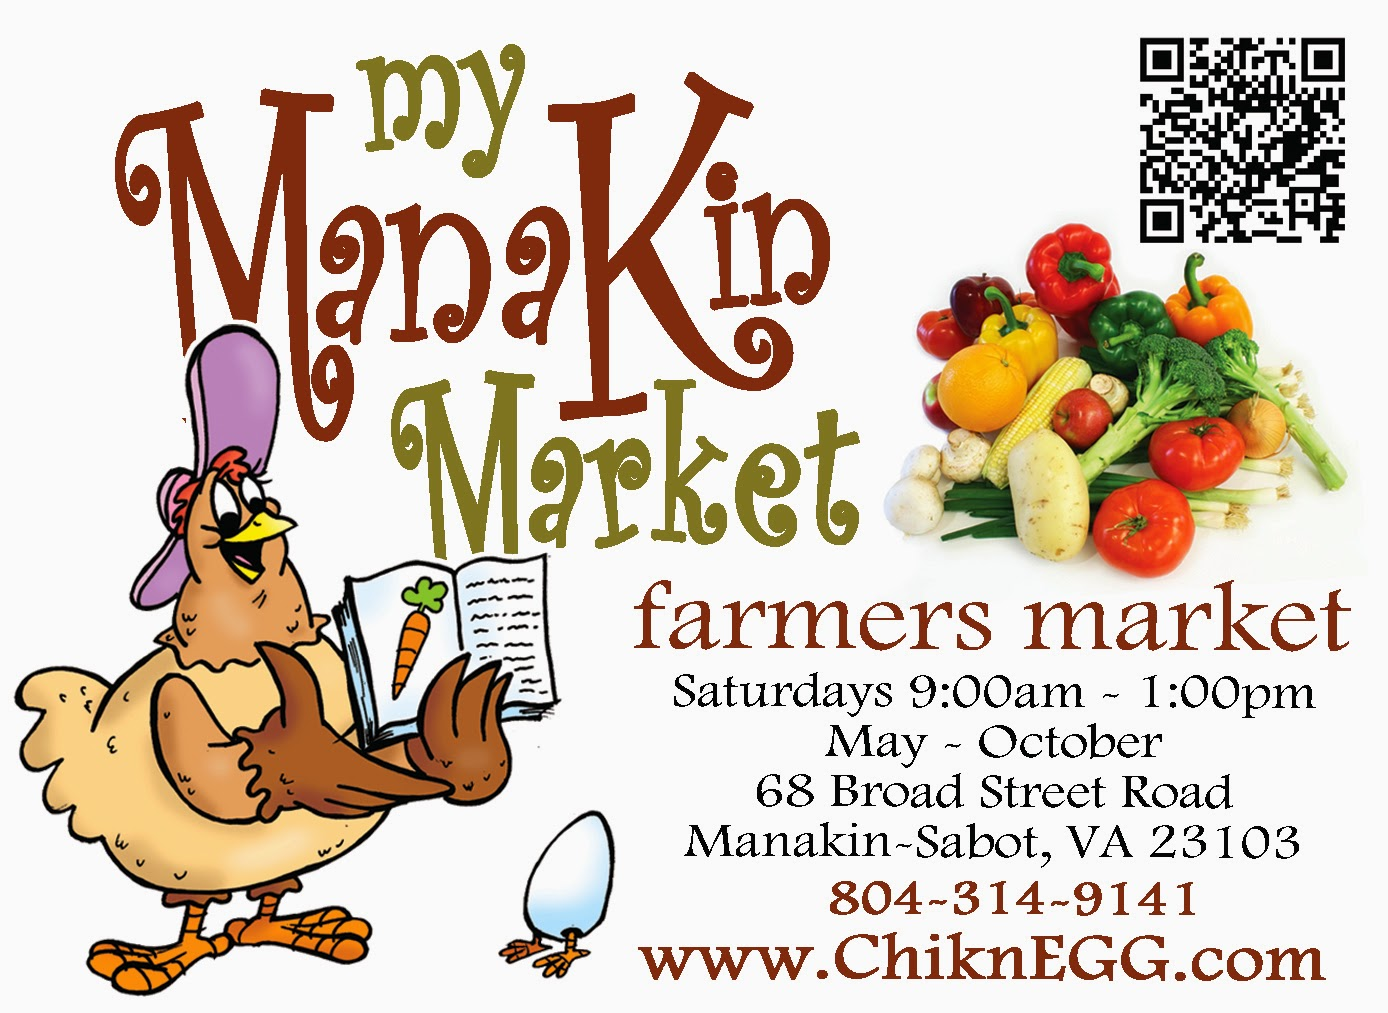 ChiknEGG's My Manakin Market is located at 68 Broad Street Road in Manakin Sabot, VA